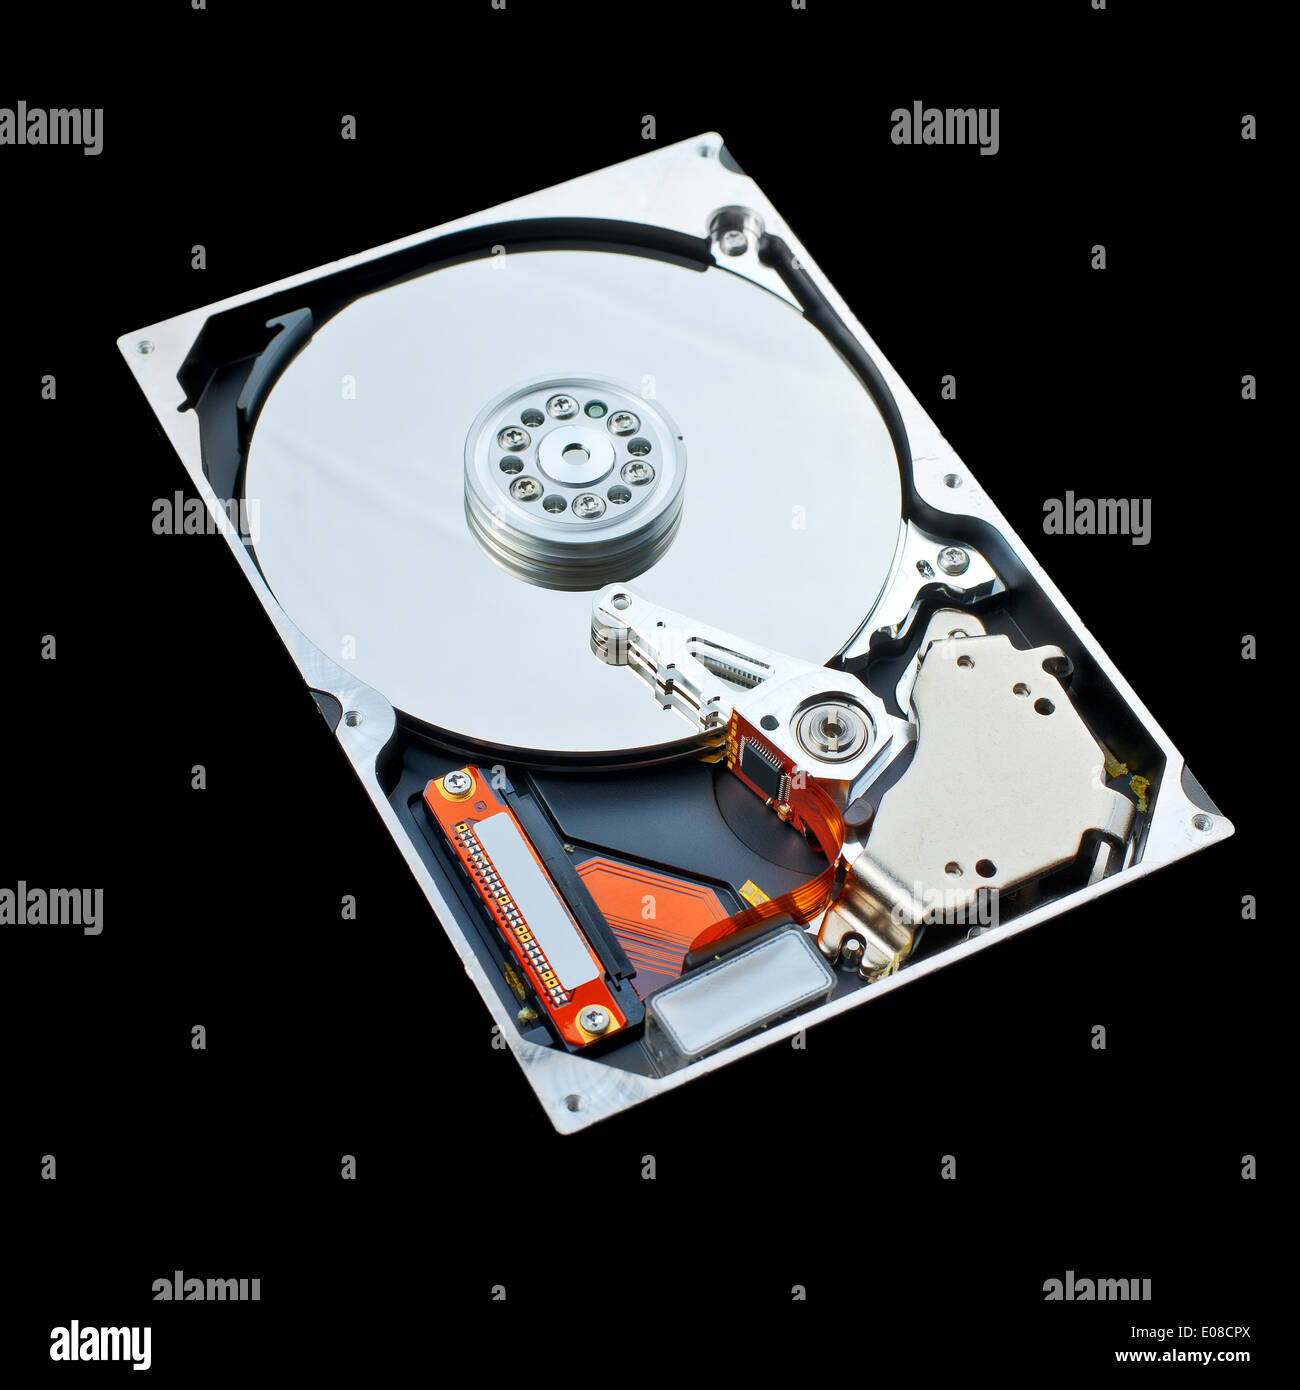 Computer hard disk isolated on black background. Computer hardware, data storage and protection concept. - Stock Image